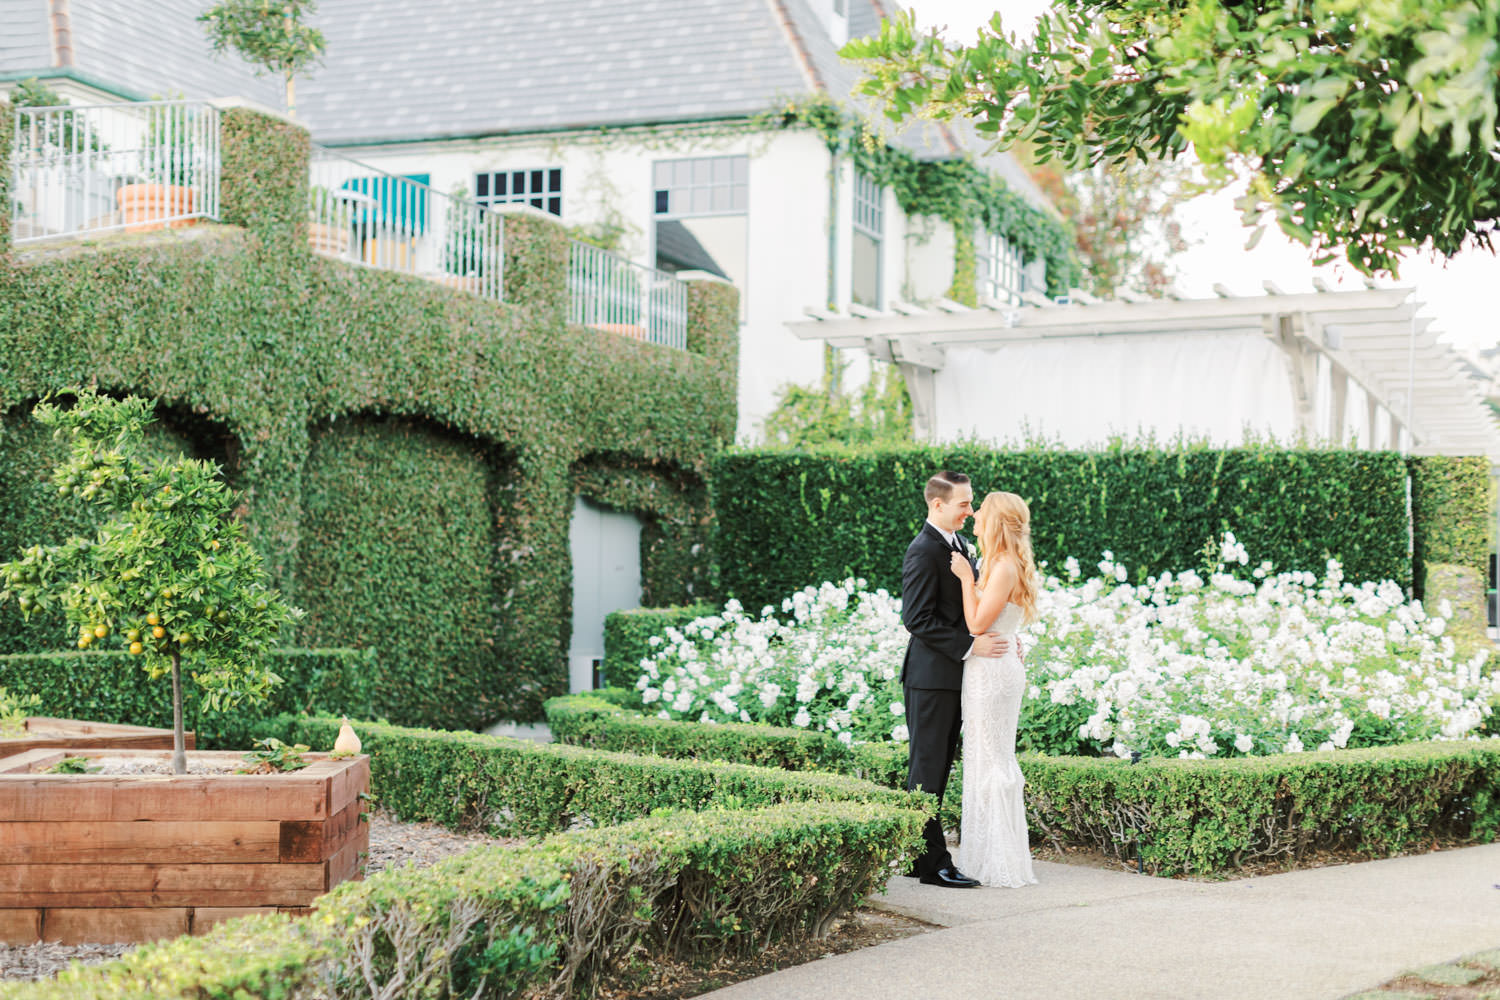 Bride and groom in a rose garden in front of an ivy-covered building. Bride wearing a Galia Lahav Gala gown with a sweetheart neckline. Del Mar Country Club Wedding by Cavin Elizabeth Photography